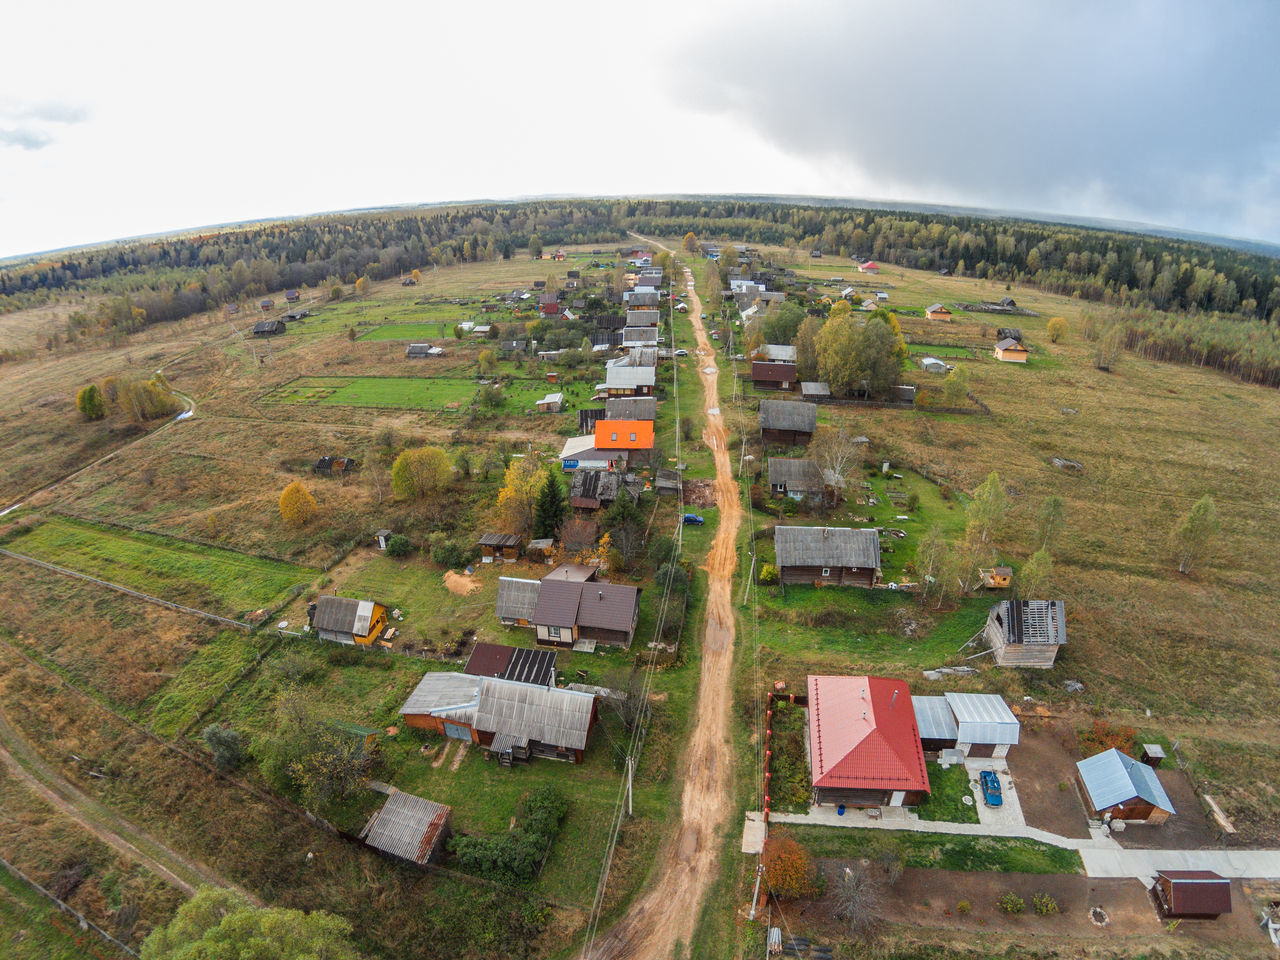 Village in the backwoods of Russia. The view from the top. A Bird's Eye View Aerial Aerial View Building Exterior City Day Nature No People Outdoors Road Rural Rural Scene Russia Scenics Sky Top Perspective Vintage